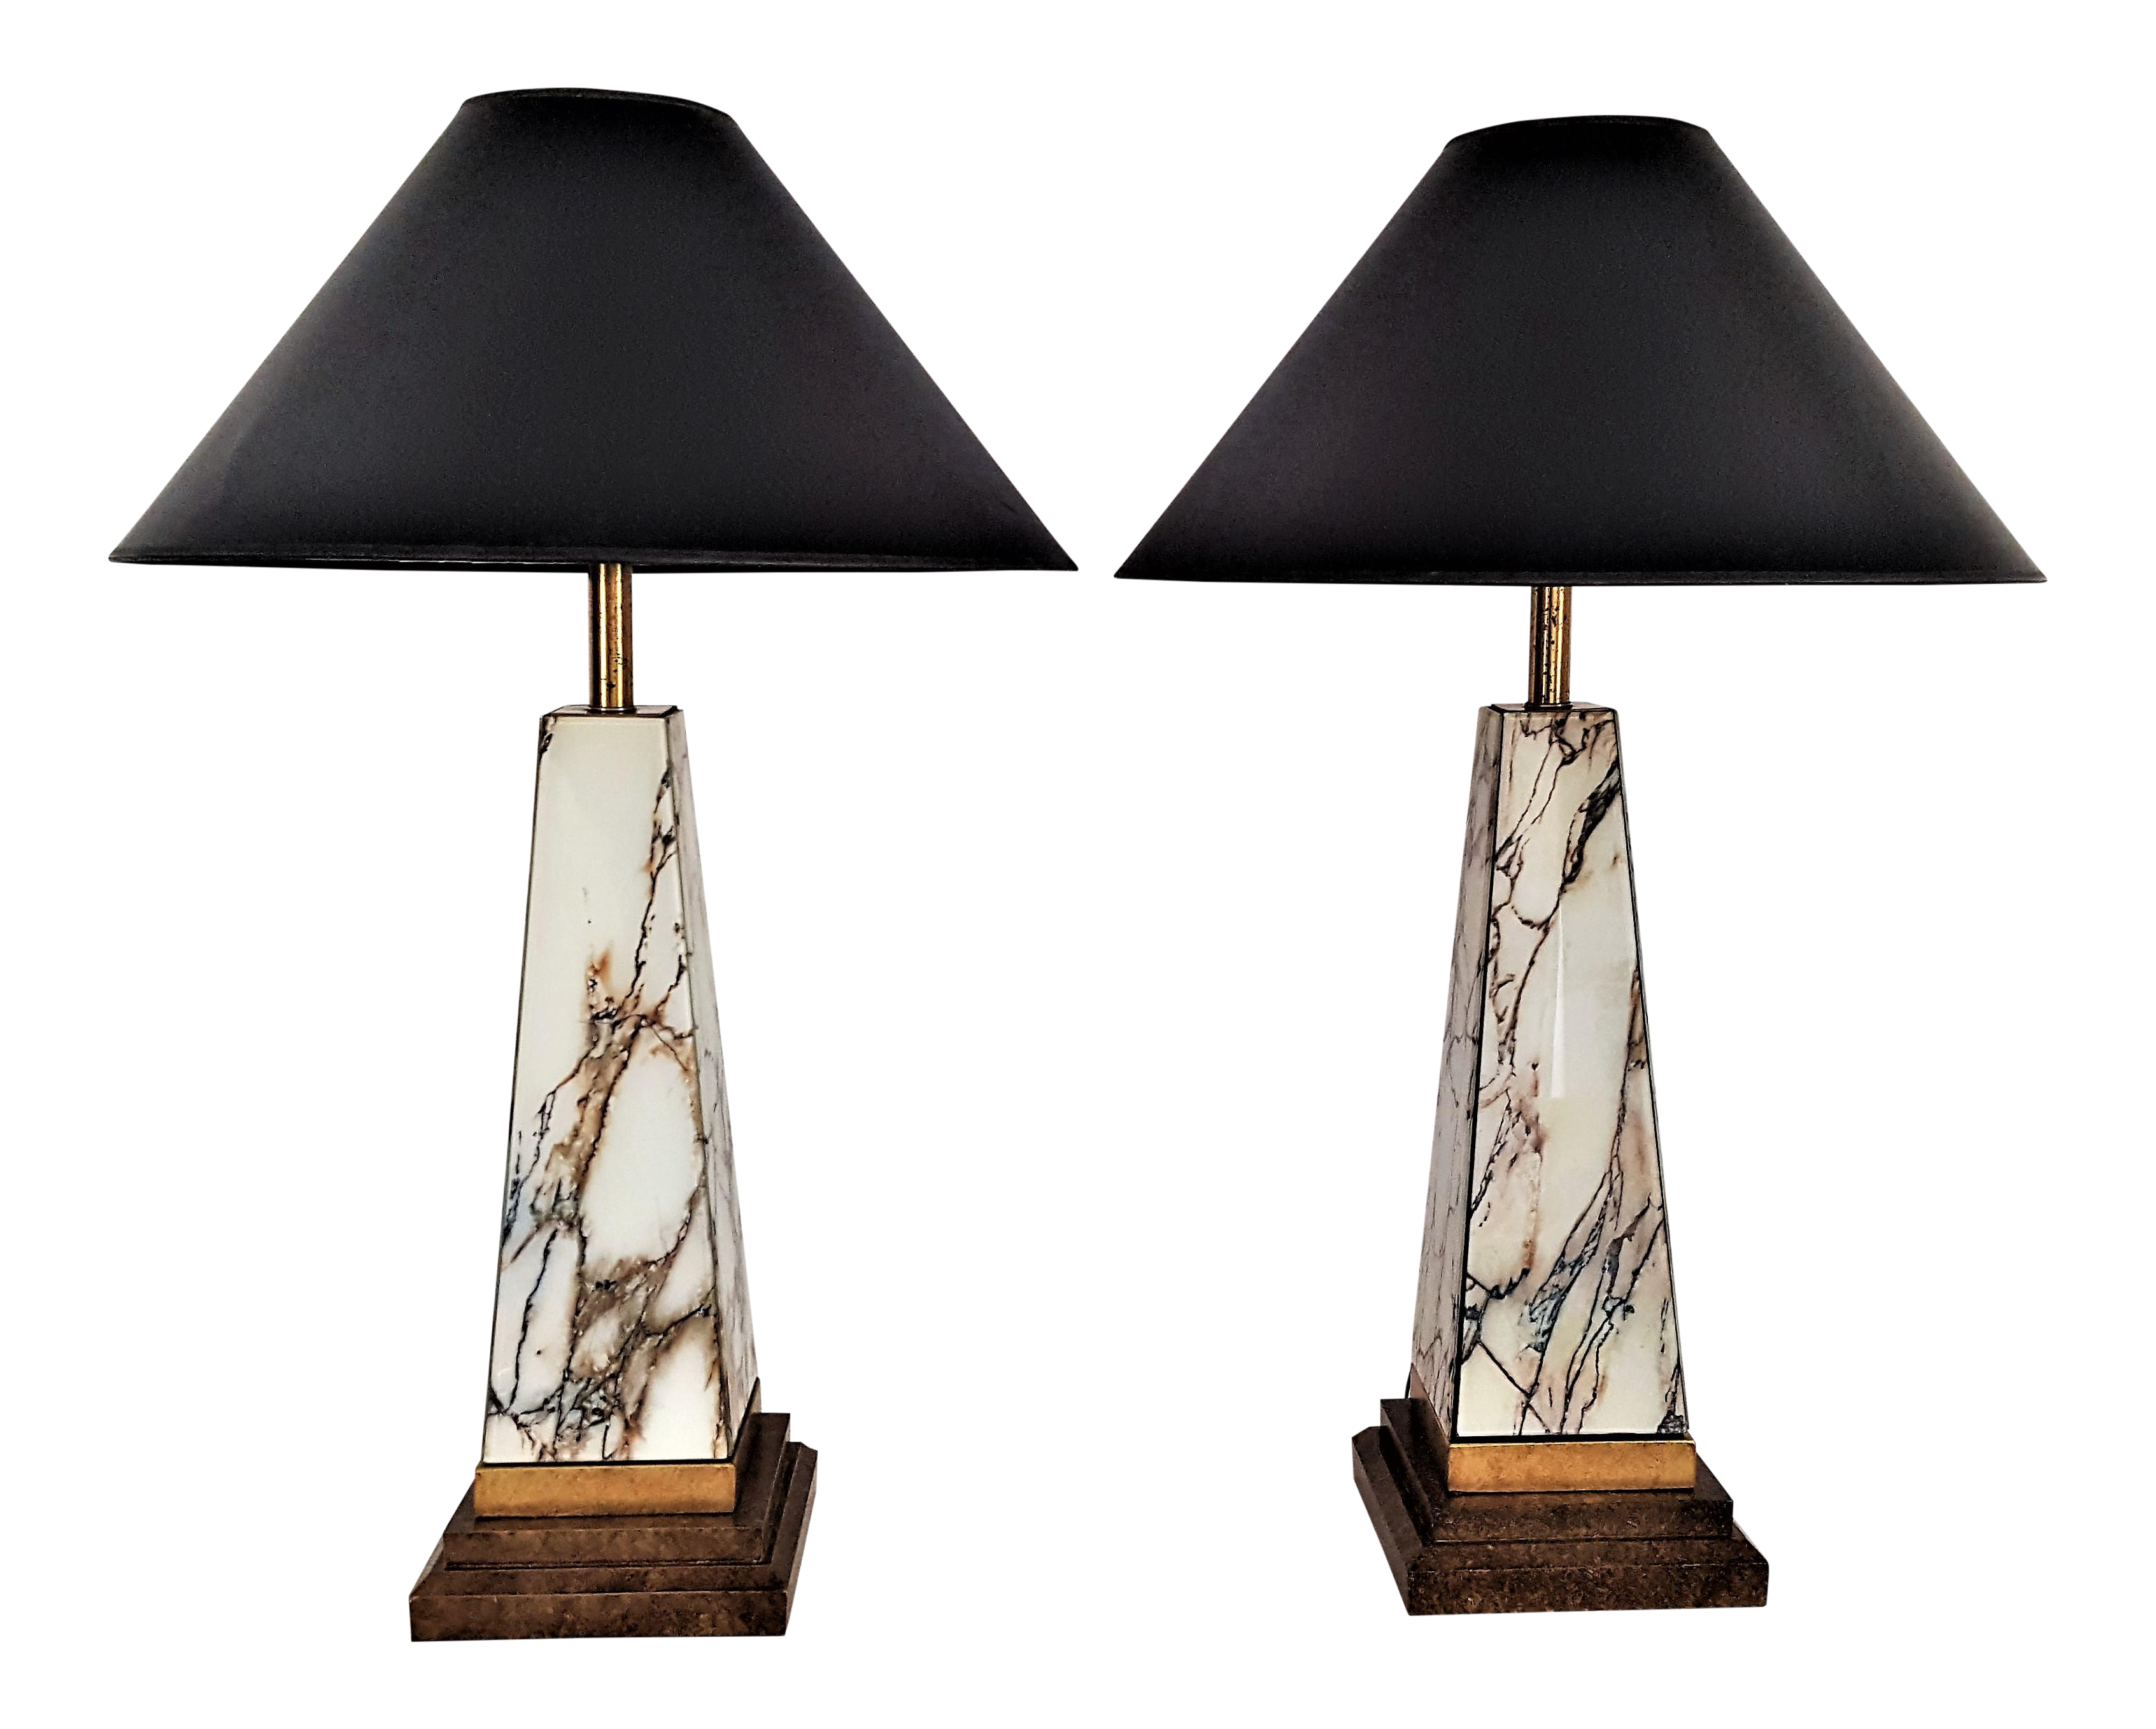 Large Art Deco Pyramidal Faux Marble Glass Table Lamps A Pair Mid Century  Modern MCM